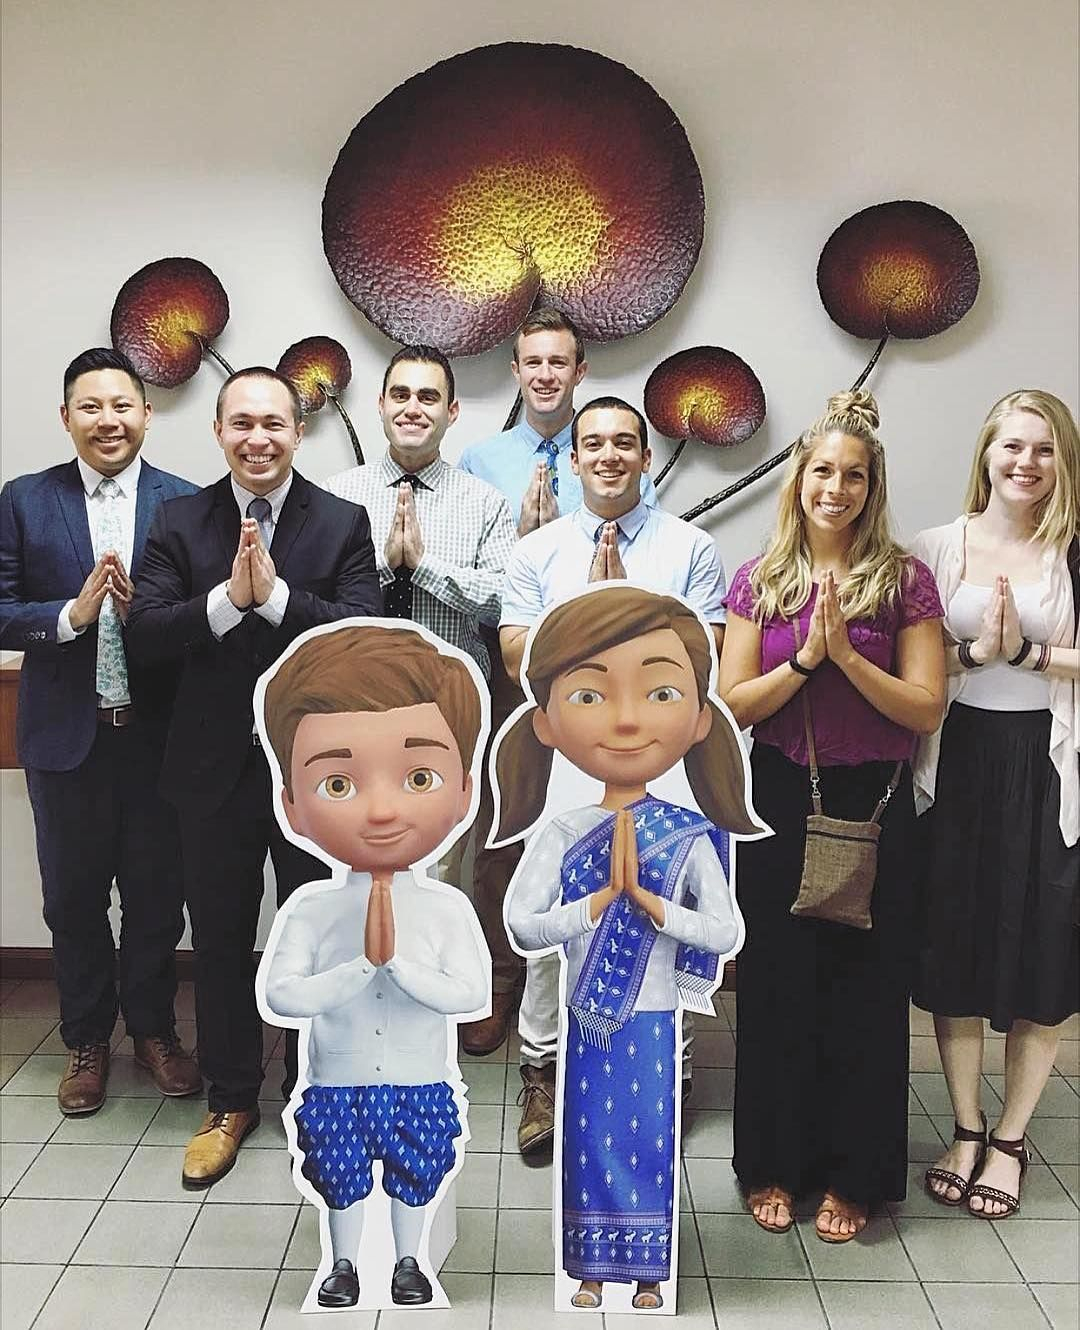 S a w a s d e e hello in thai today myself and 6 of my best s a w a s d e e hello in thai today myself and 6 of my best friends visited the branch in thailand on our vacation we learned a few greetings kristyandbryce Choice Image